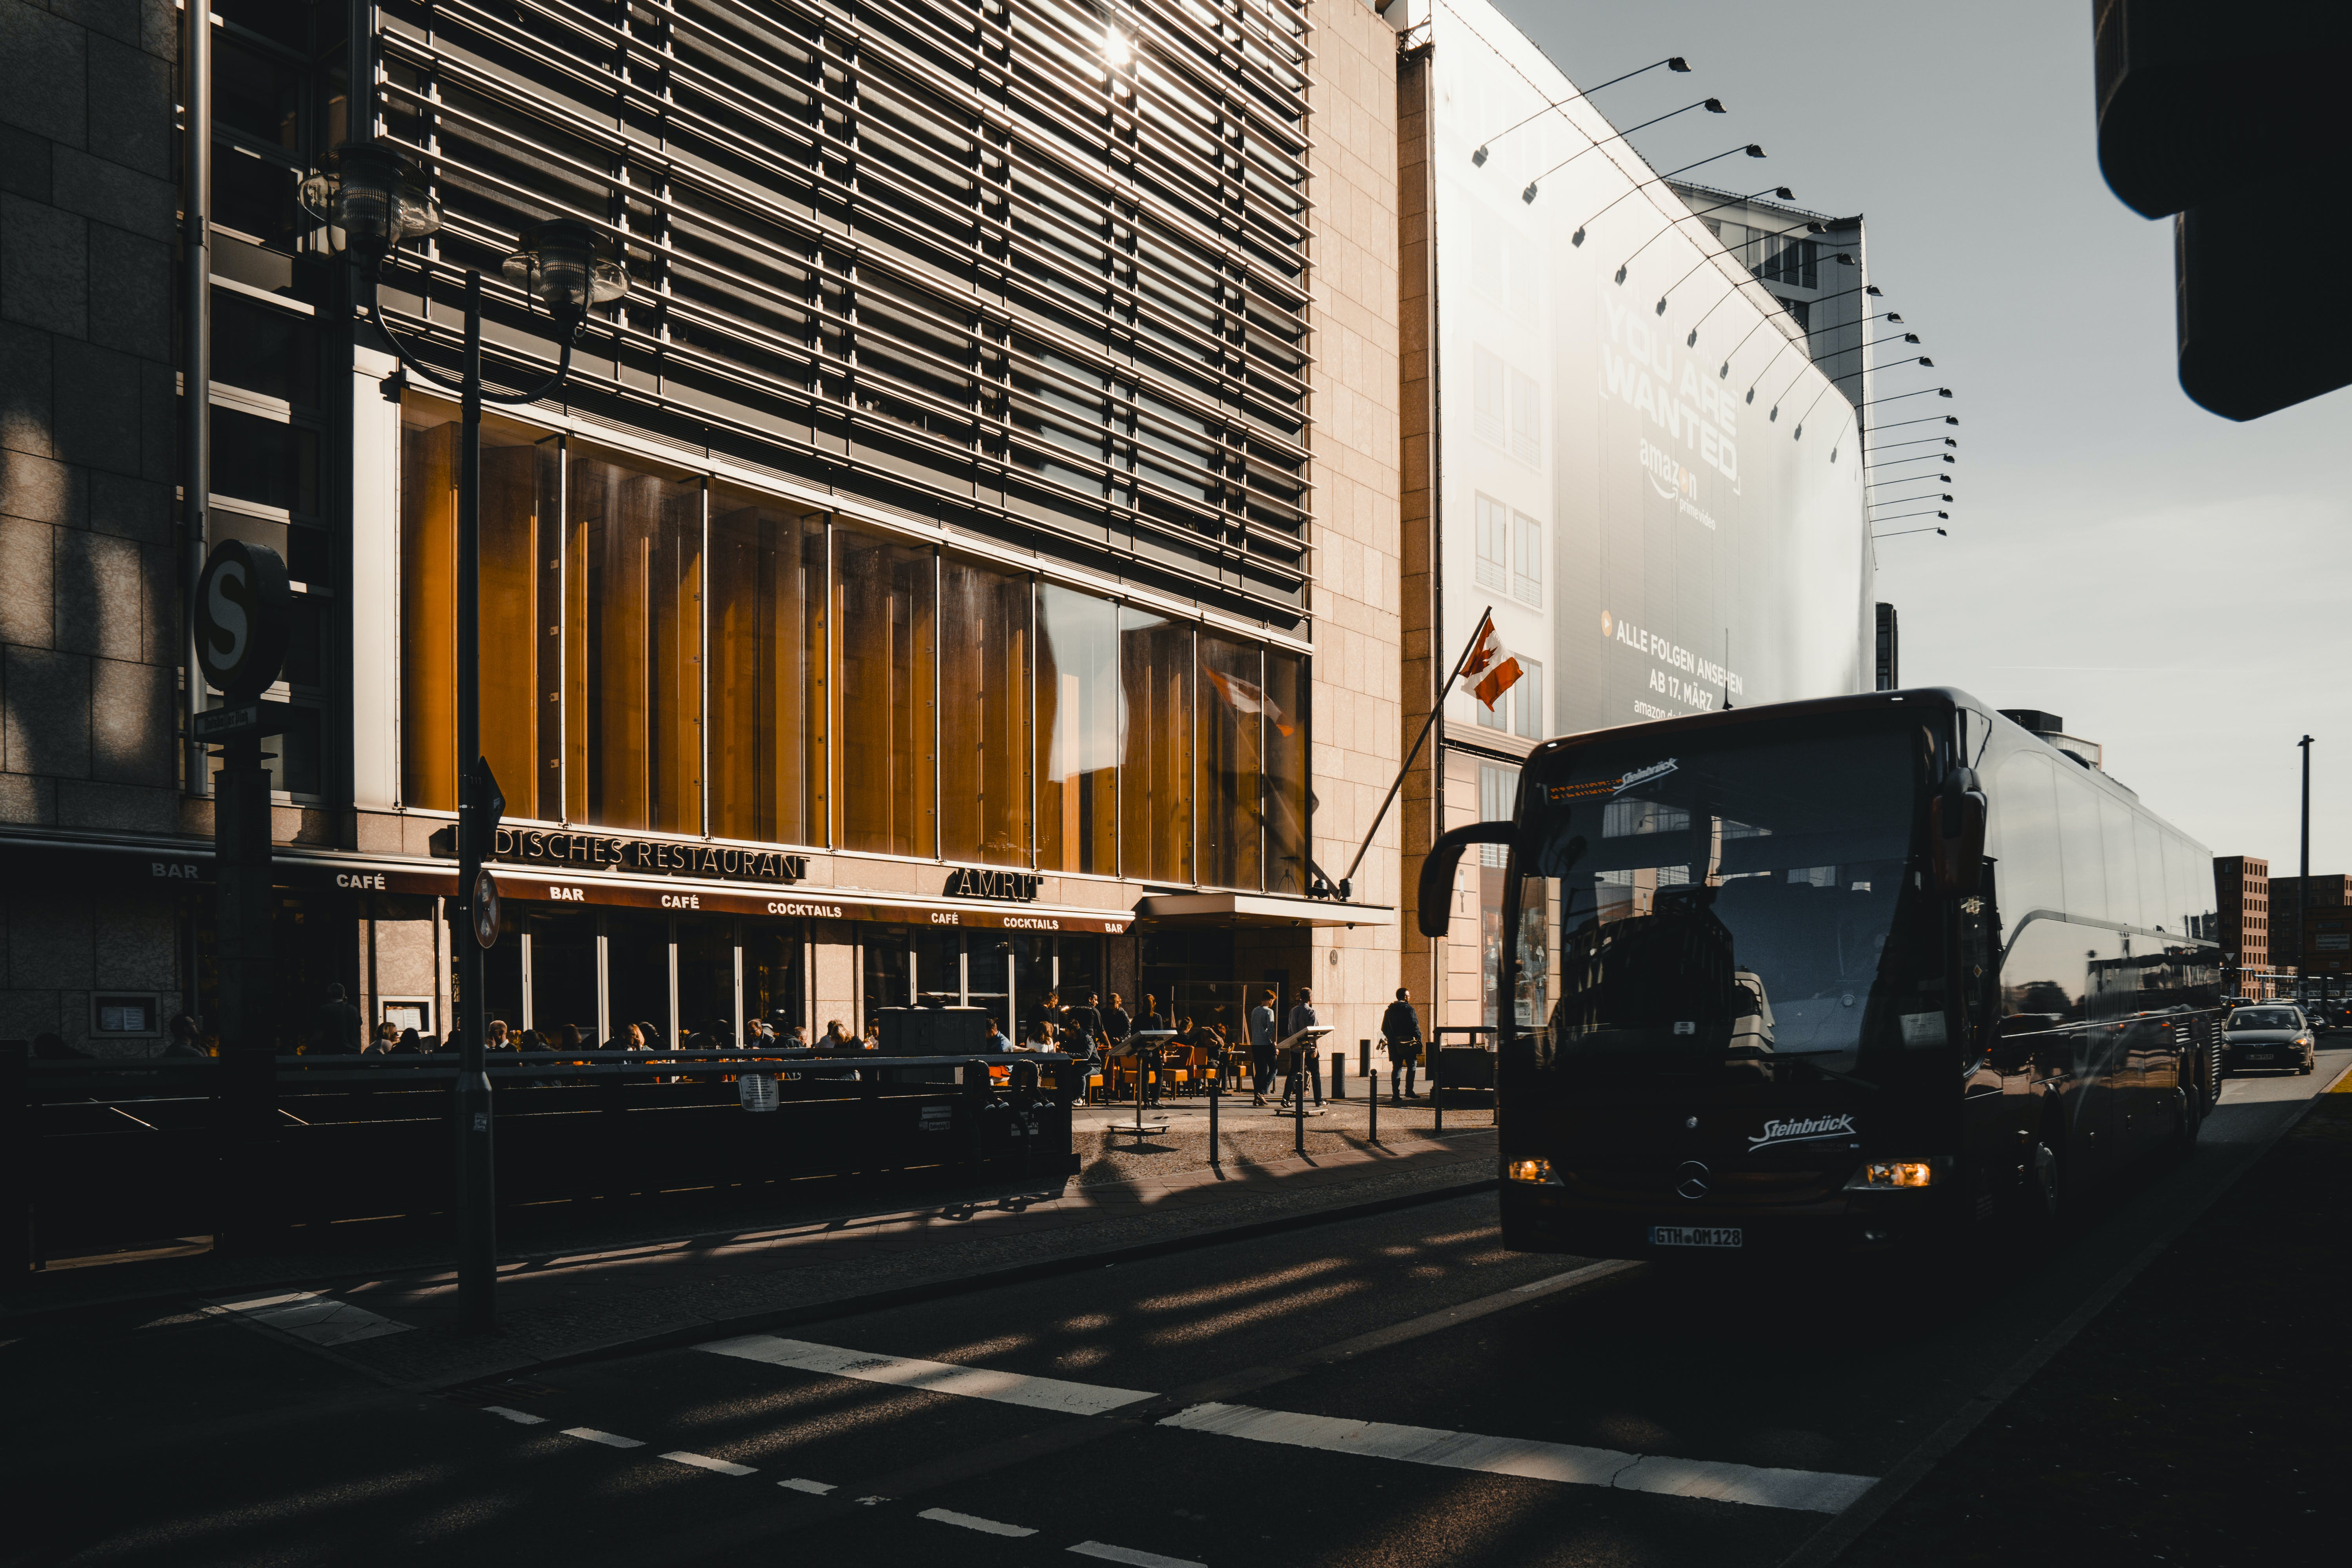 Photo of Bus on Road